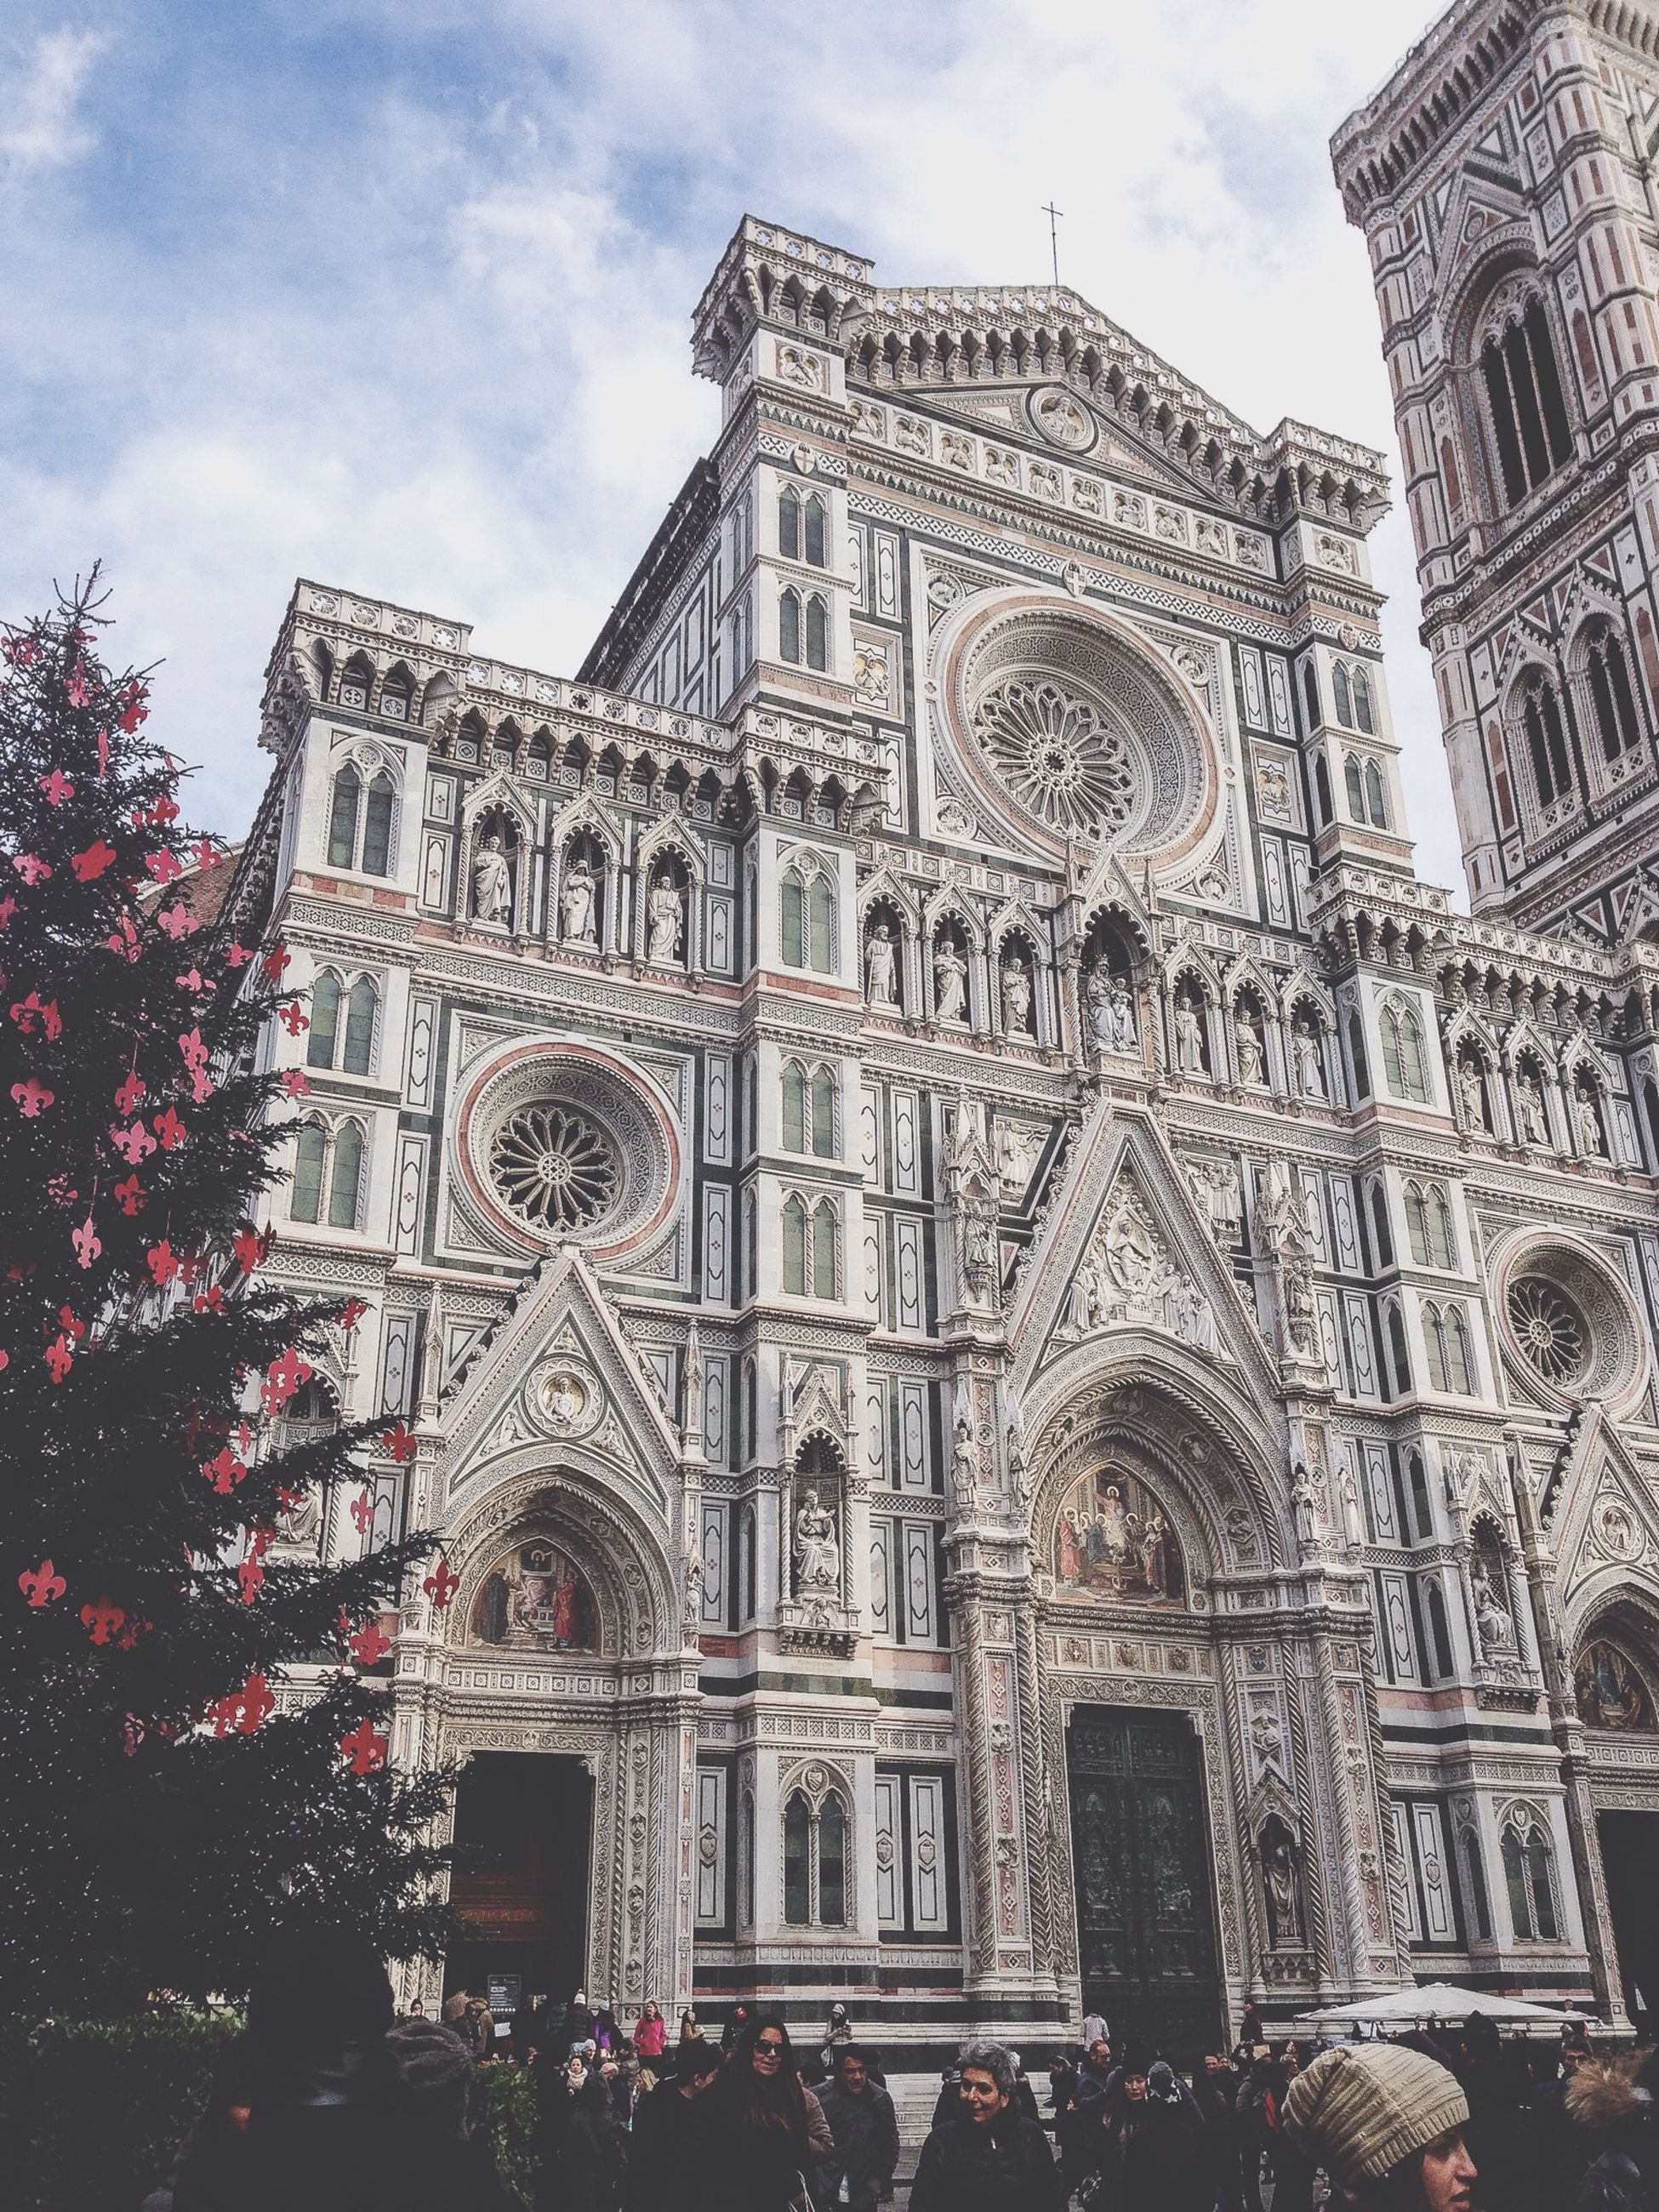 architecture, building exterior, built structure, religion, place of worship, church, spirituality, low angle view, sky, cathedral, travel destinations, history, famous place, facade, day, tree, outdoors, city